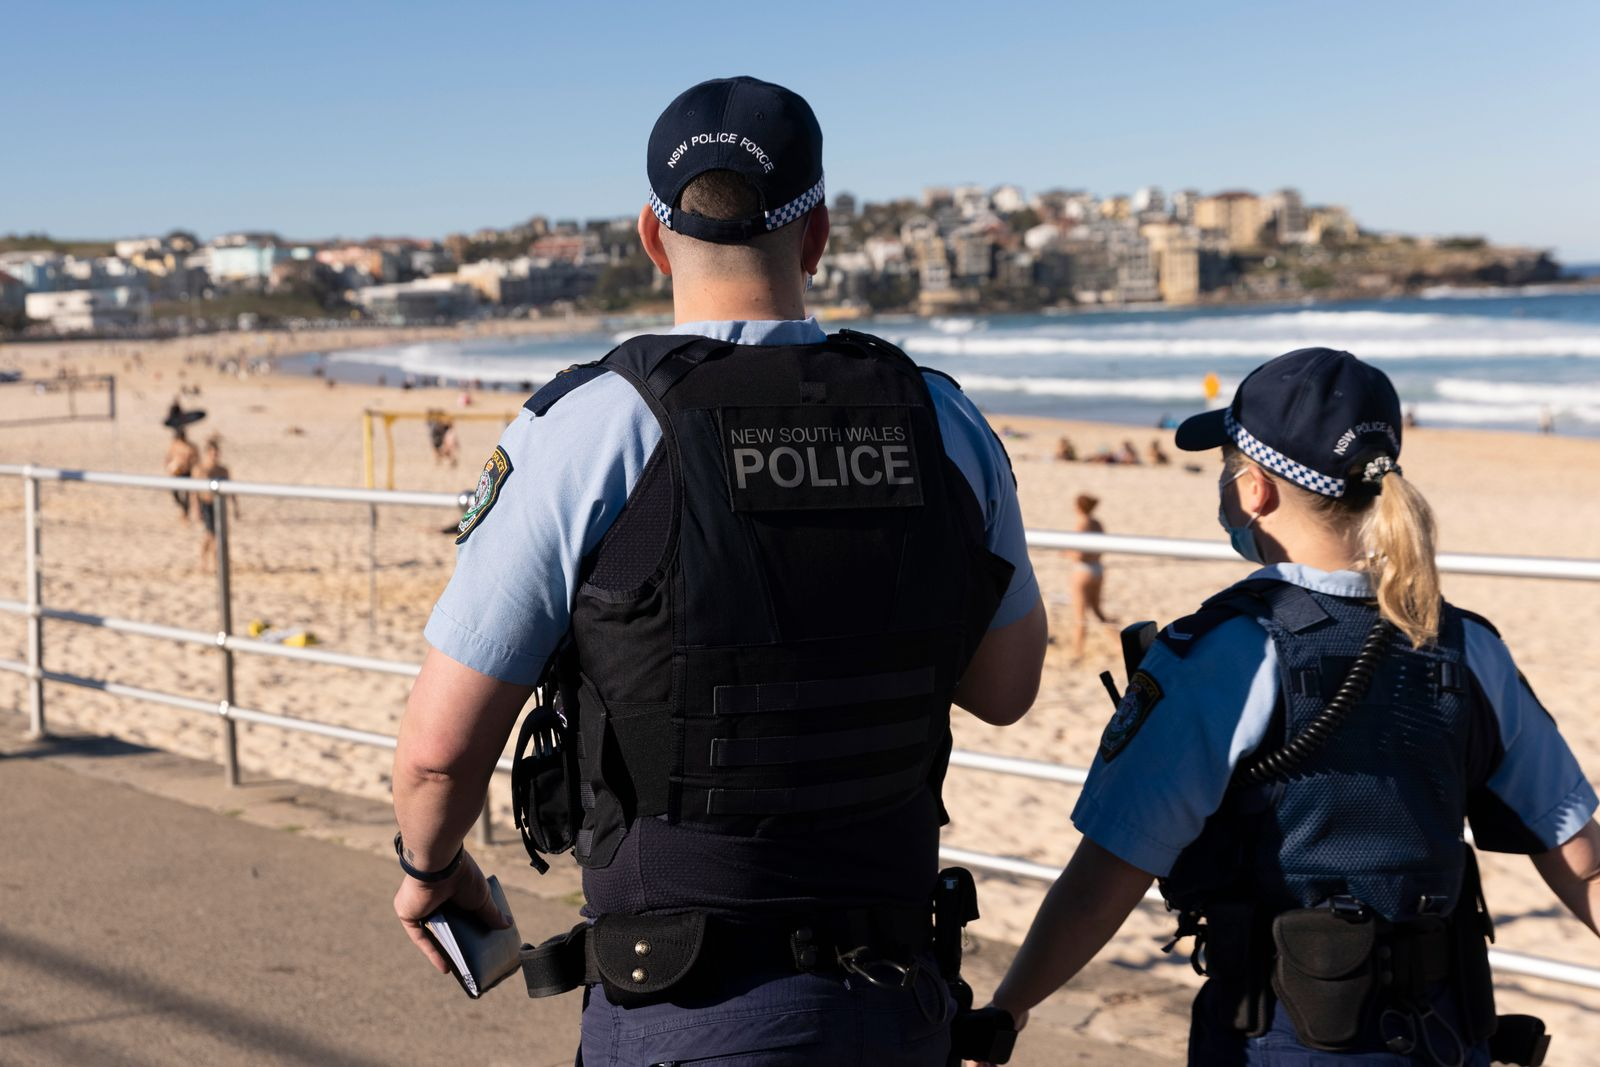 Lockdown Restrictions Come Into Effect Across Greater Sydney As COVID-19 Cluster Continues To Grow